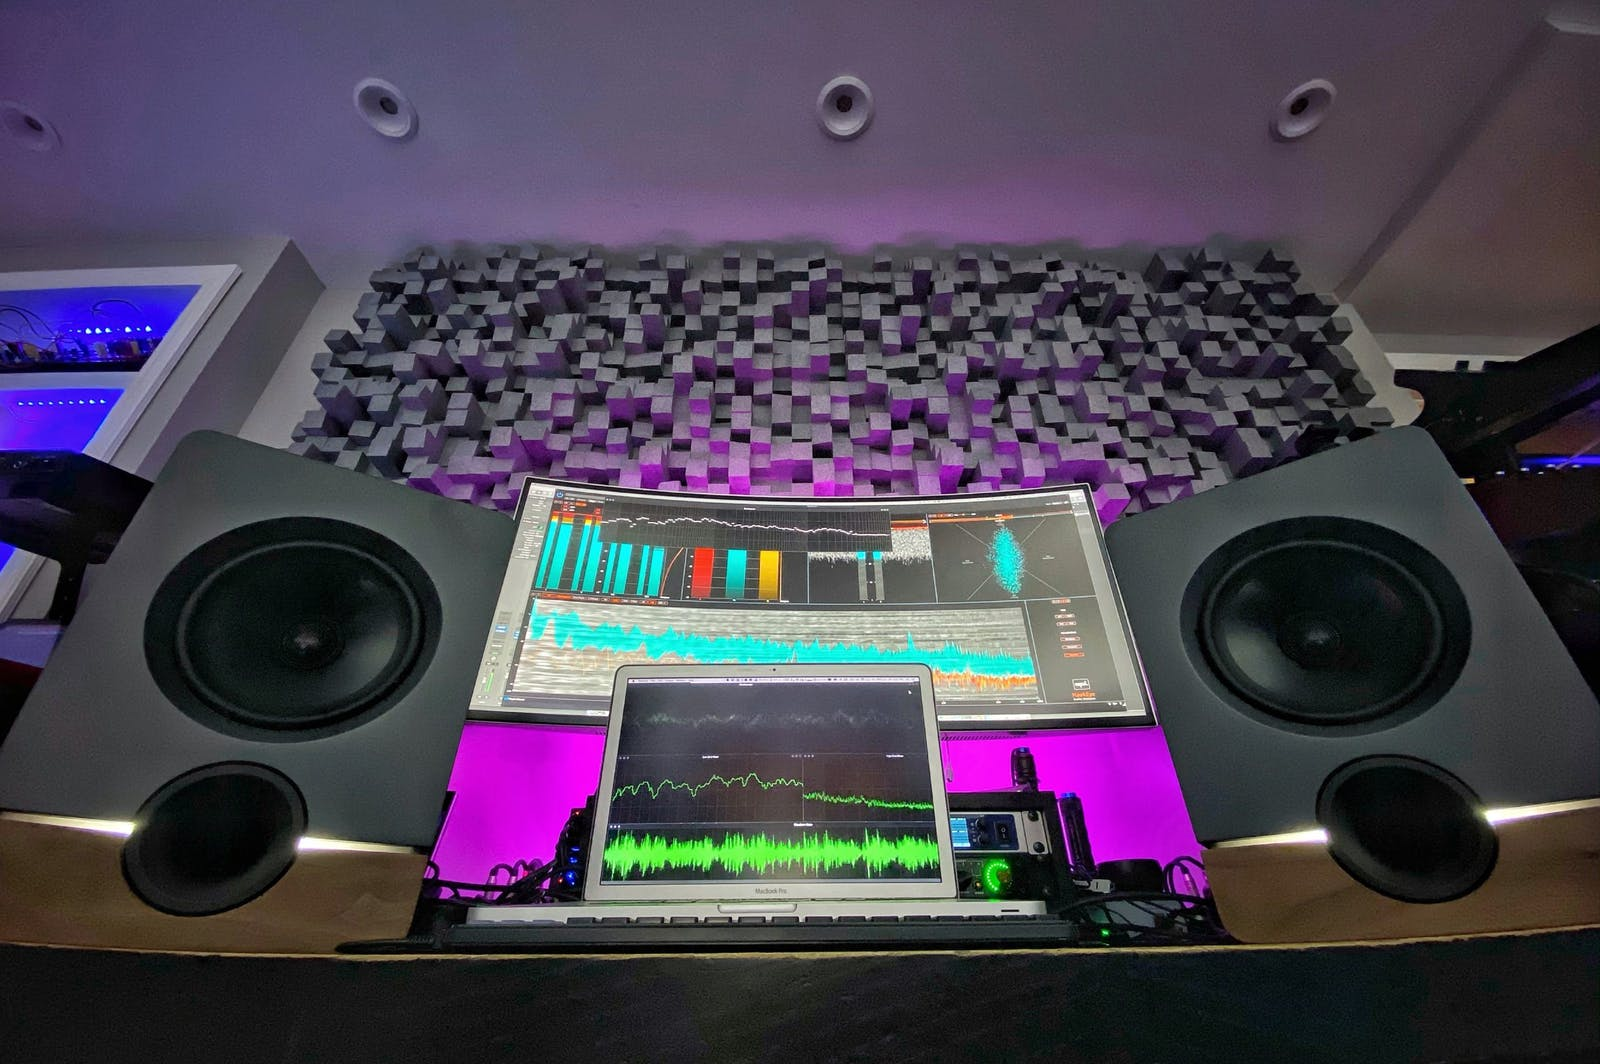 Richard Devine's home studio with Frontier studio monitors by Output and Barefoot audio